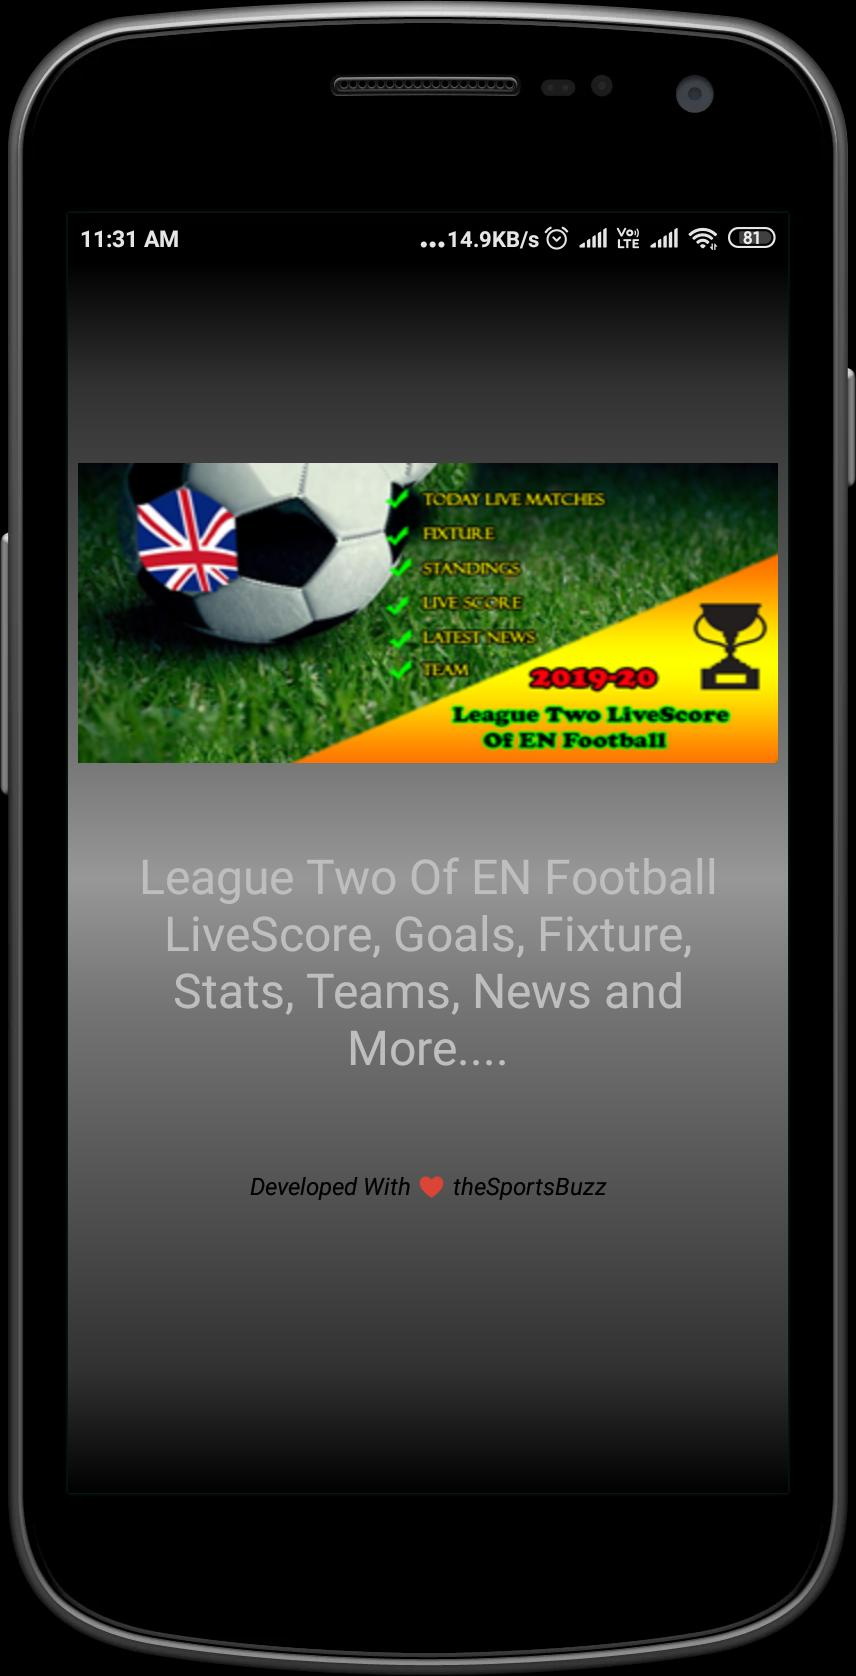 League Two Of En Football 2019 20 Live Score For Android